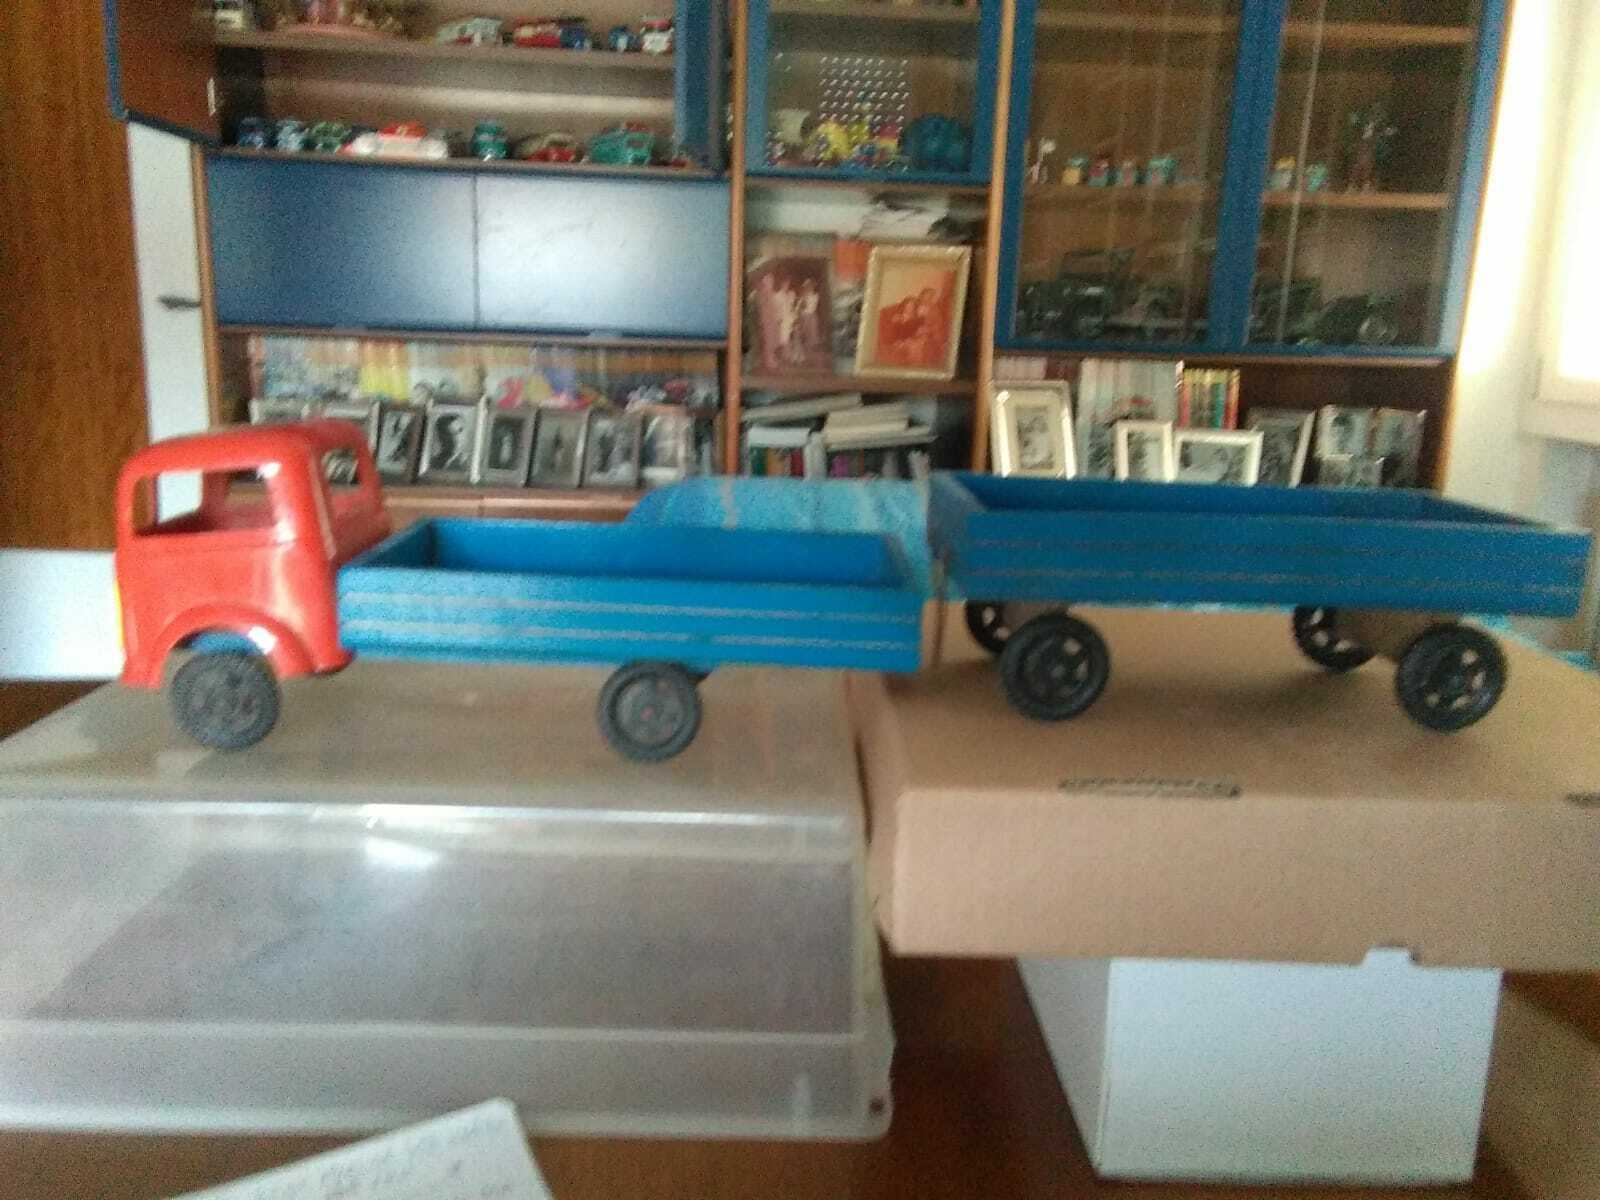 A3-Truck with Plastic cab and chest in legnocon Trailer bluee